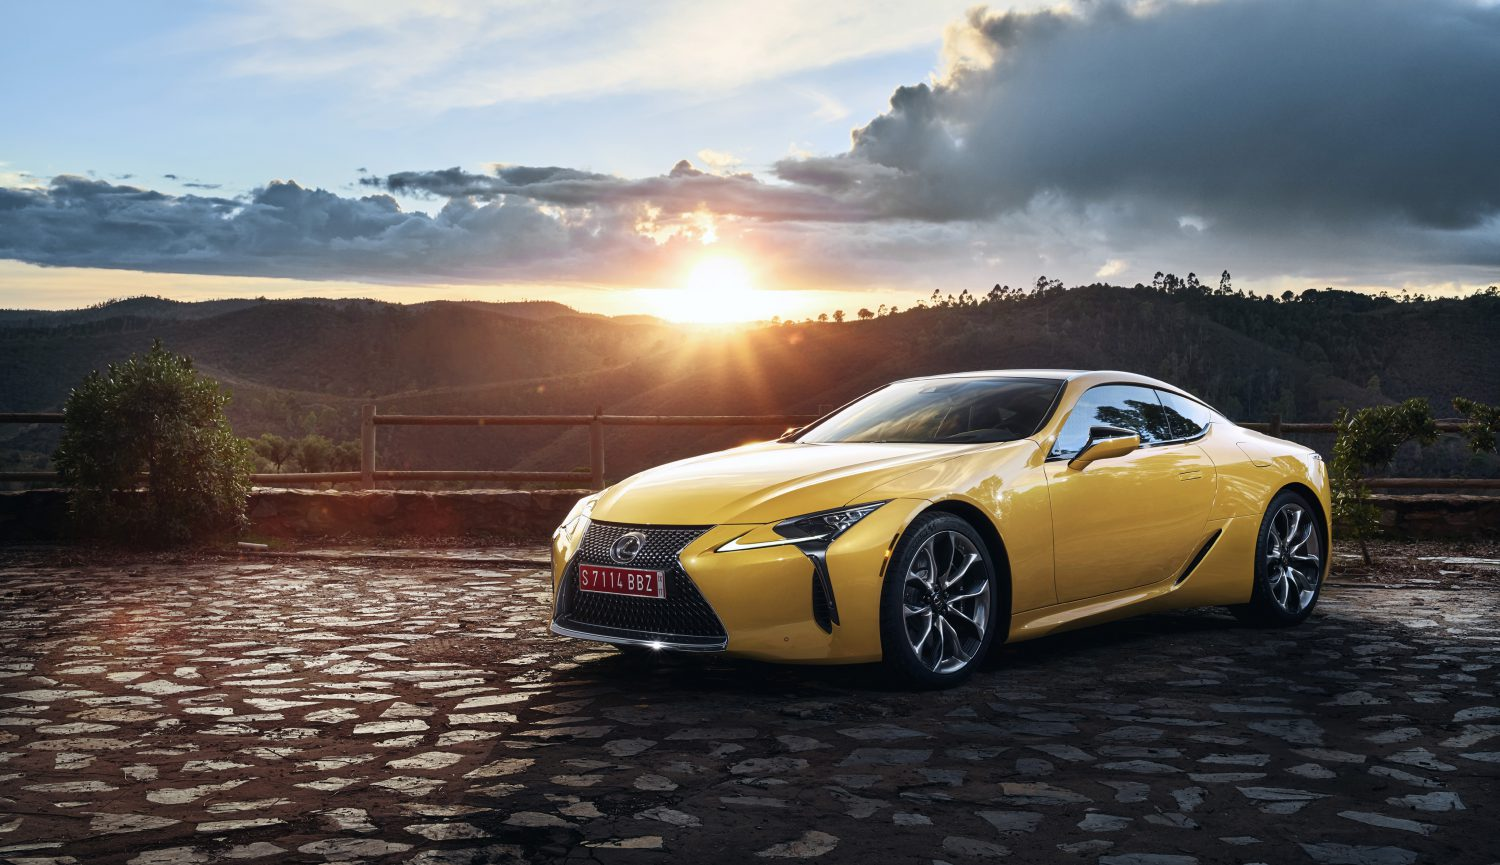 Lexus Lc 500 Price >> Lexus Announces Pricing For All New 2018 Lc Performance